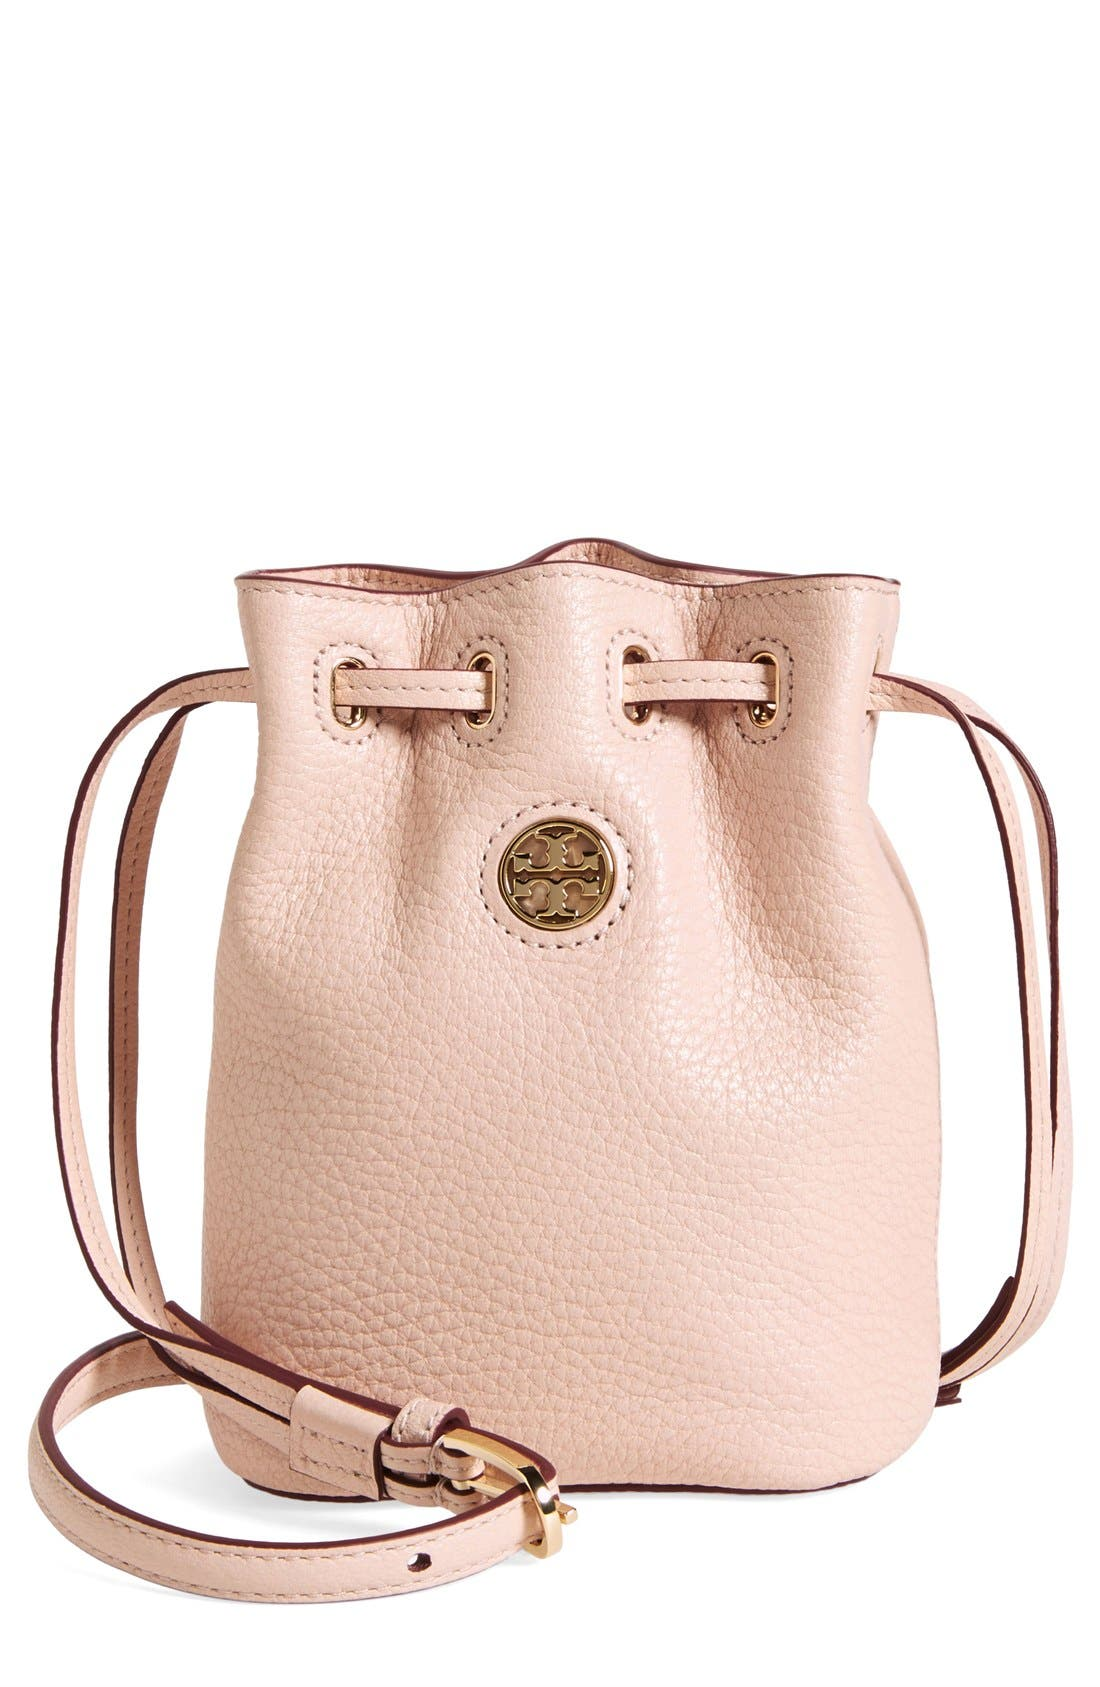 Alternate Image 1 Selected - Tory Burch 'Mini Brody' Crossbody Bucket Bag